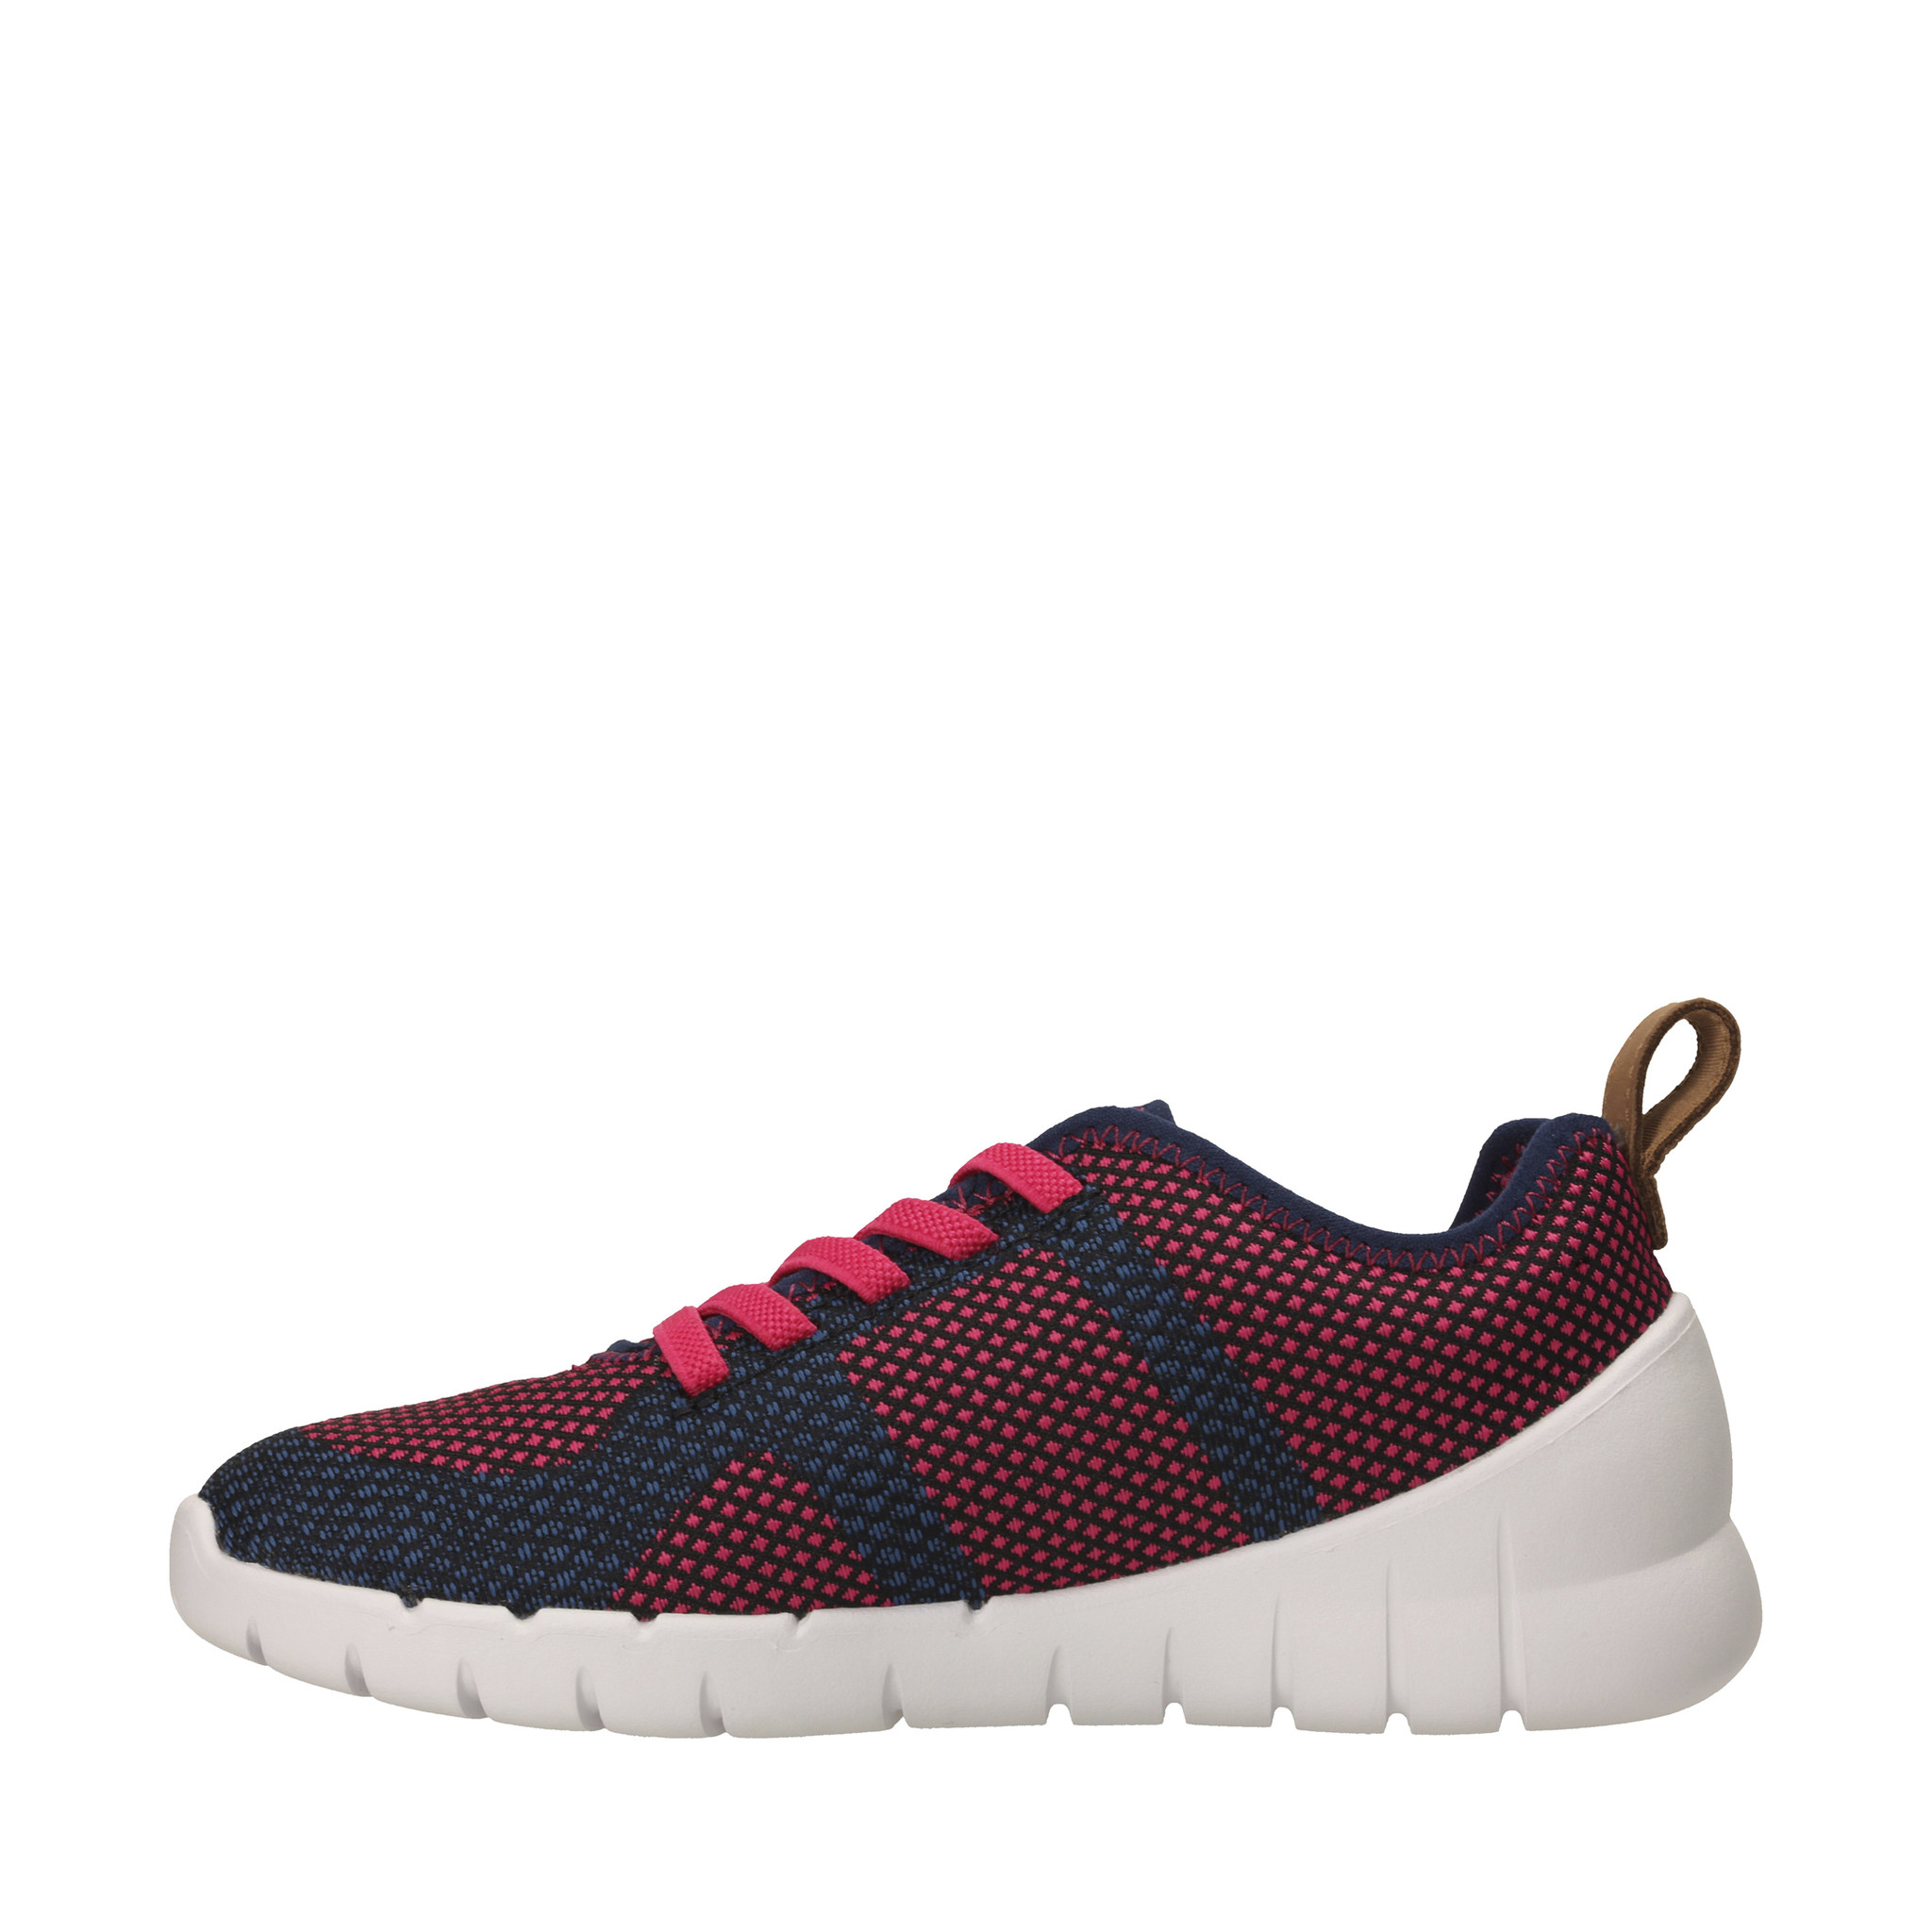 Clarks Sprint Flux Navy Raspberry